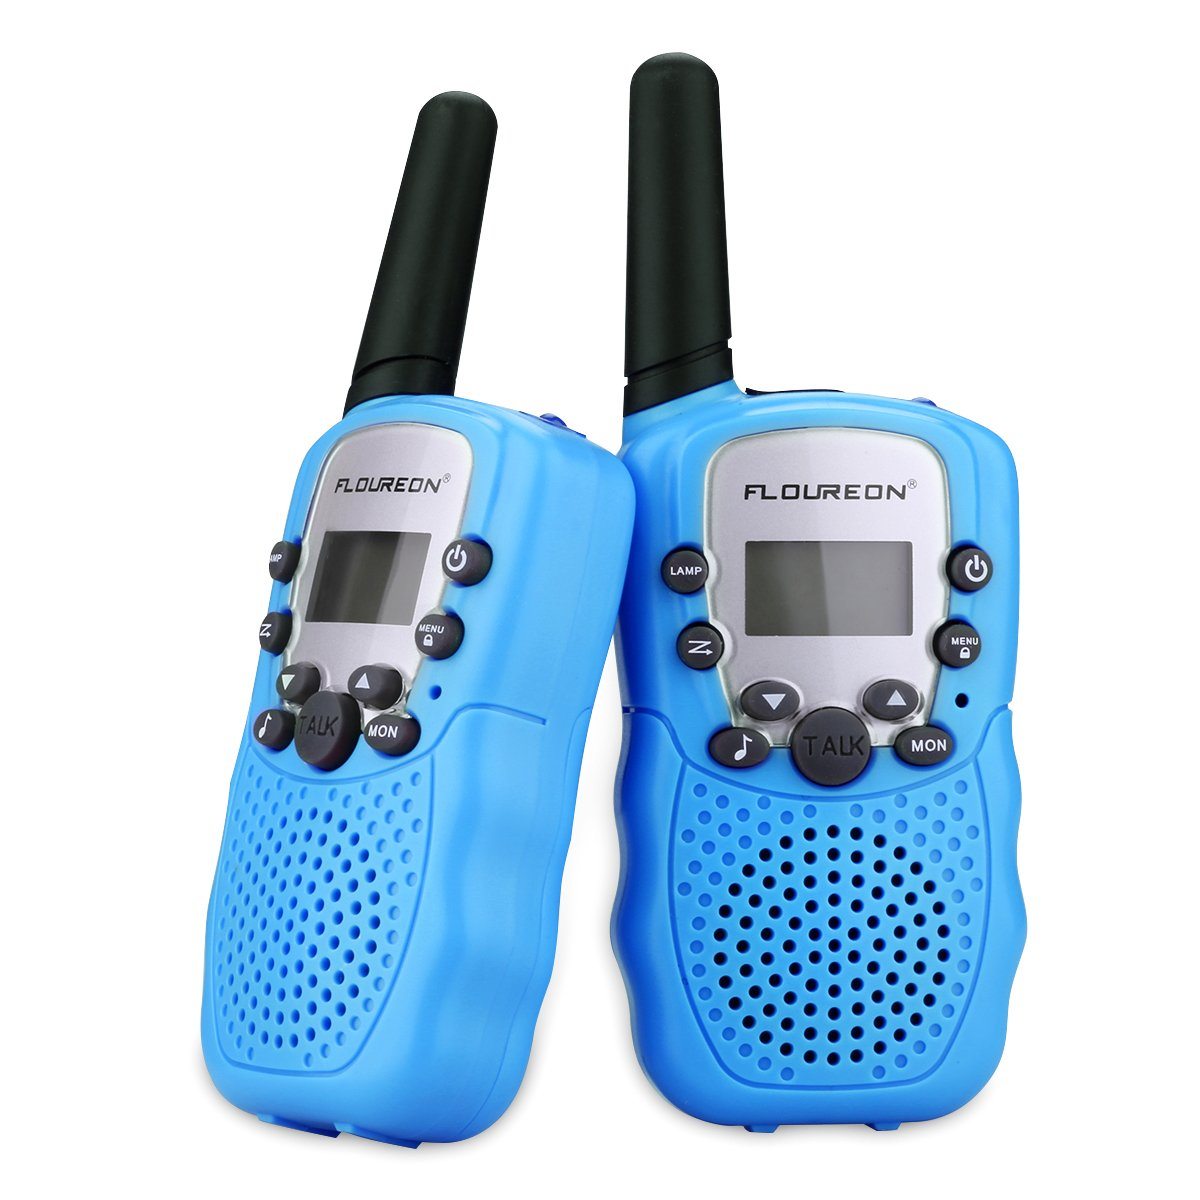 FLOUREON Kids Toy Walkie Talkies Two Way Radios Walky Talky 22 Channel Long Range UHF Handheld Outdoor Kids Toy Cellphone for Children Day/Birthday/Christmas Gift (Blue)